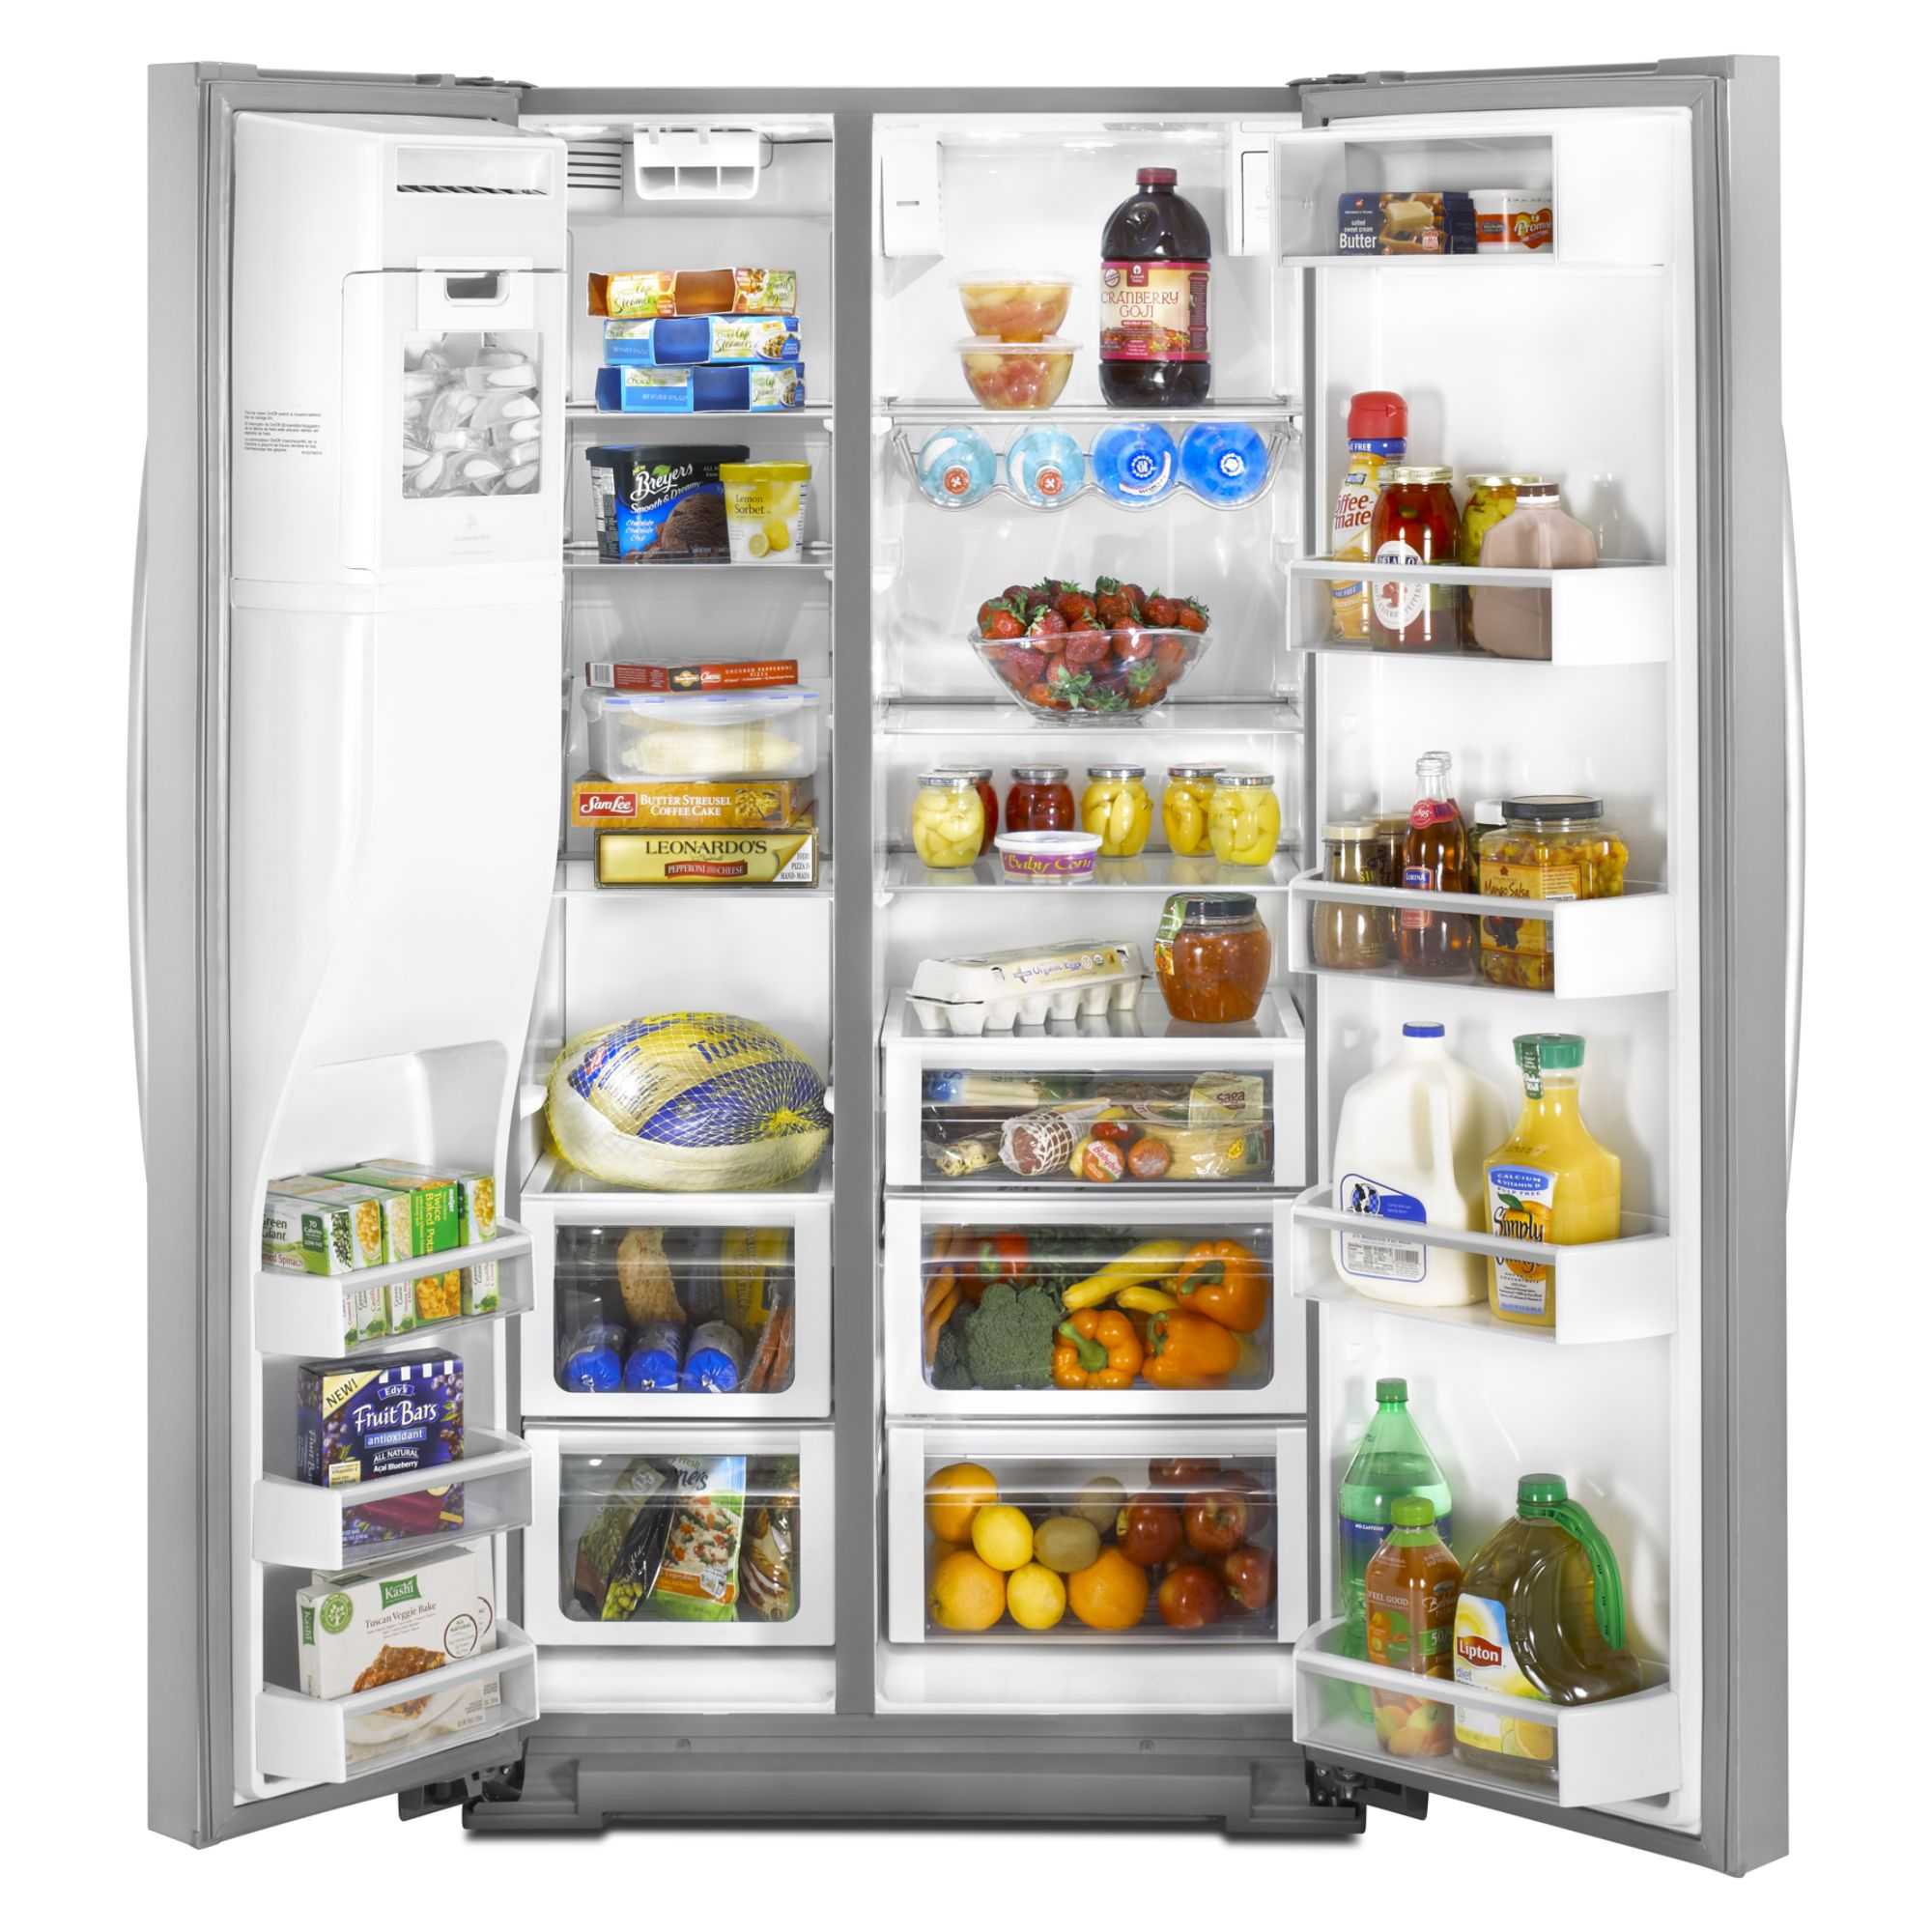 Whirlpool 24.5 cu. ft. Side-by-Side Refrigerator w/ In-Door-Ice® - Stainless Steel